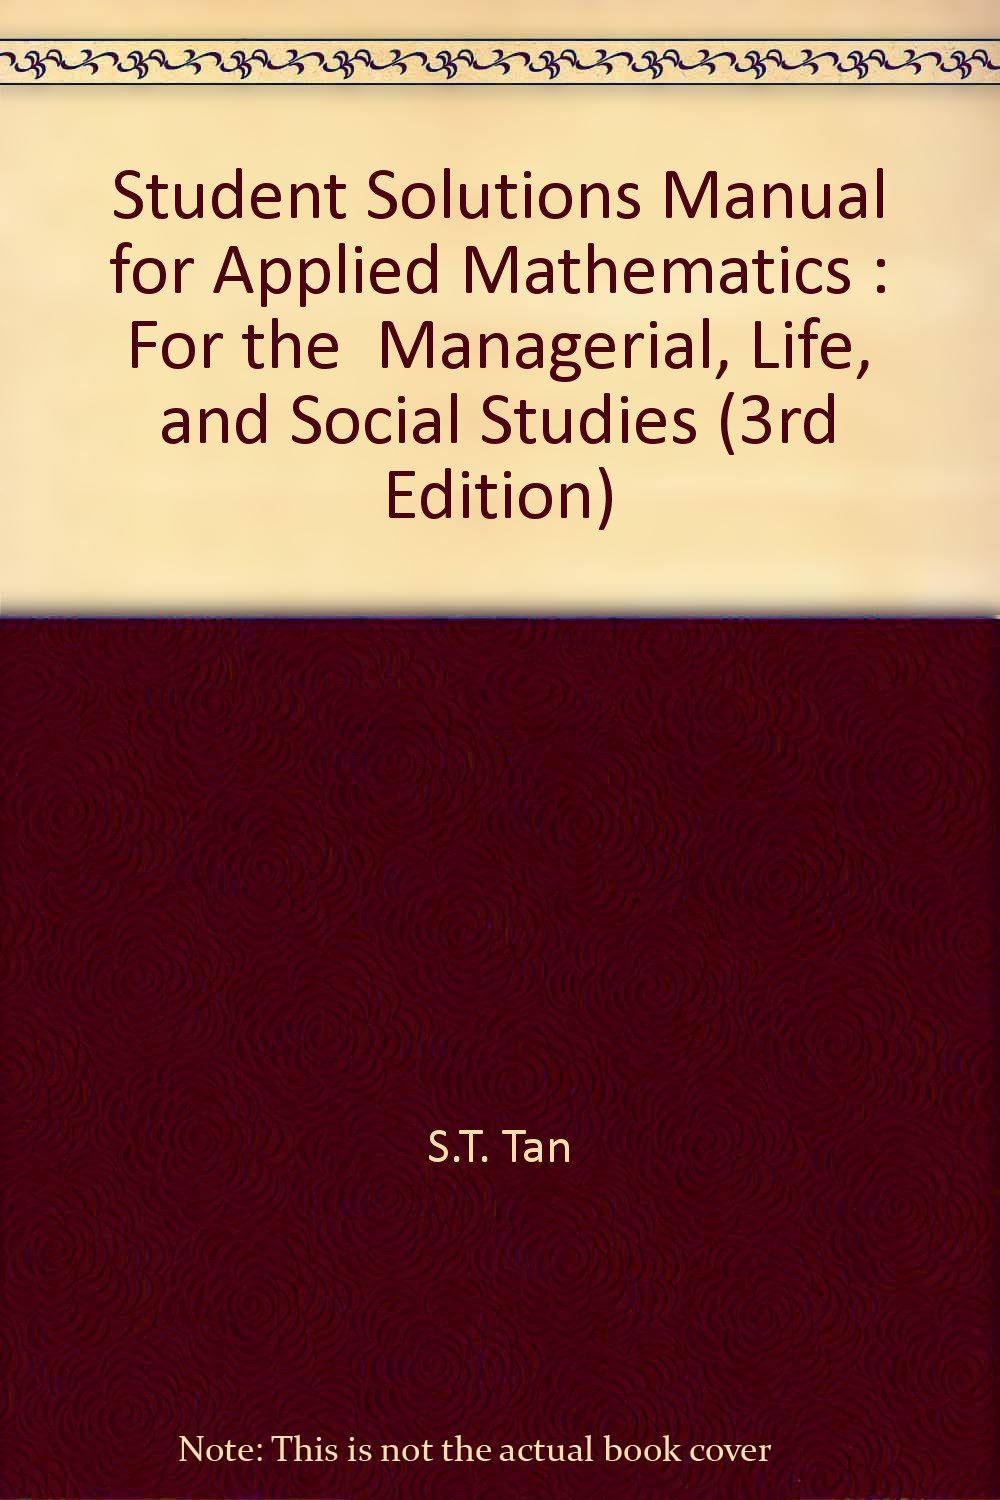 Student Solutions Manual for Applied Mathematics : For the Managerial,  Life, and Social Studies (3rd Edition): S.T. Tan: Amazon.com: Books